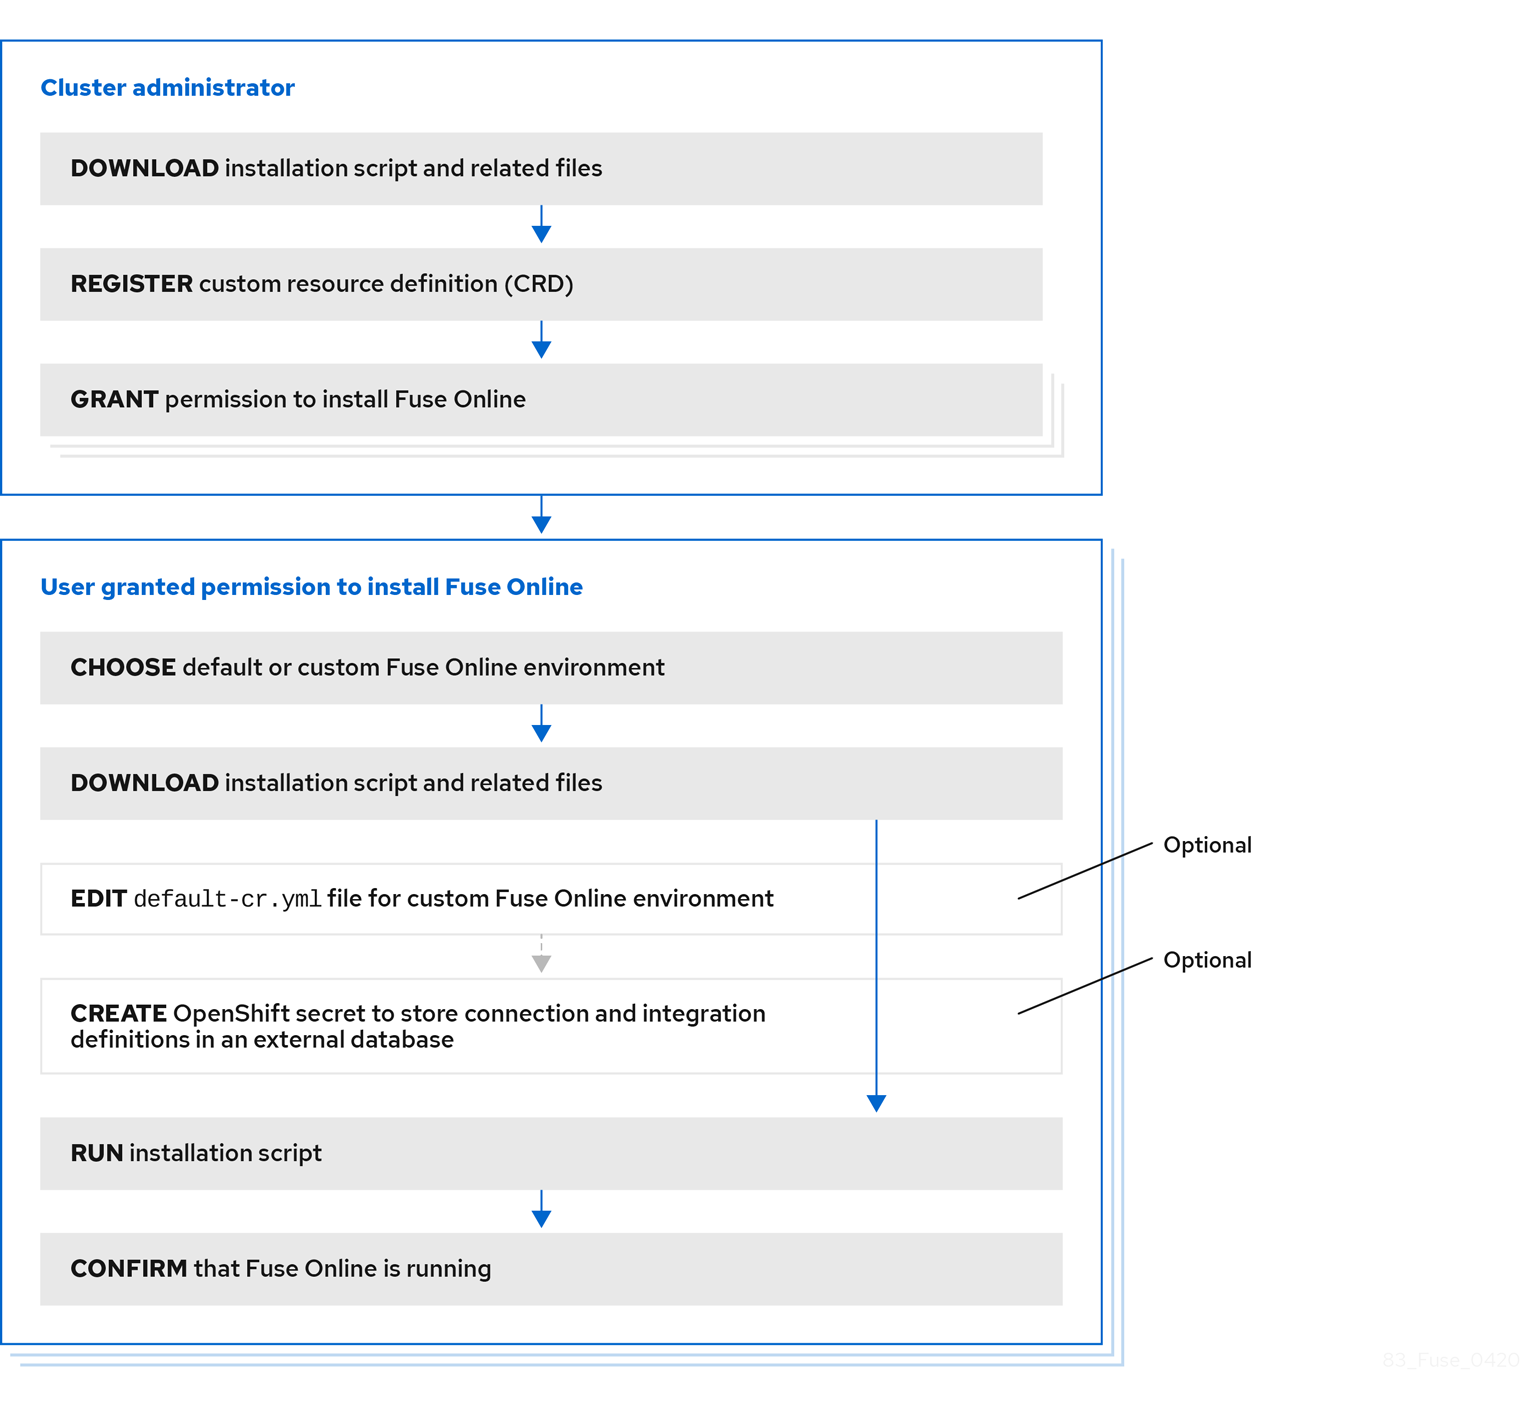 Workflow for installing Fuse Online on OCP. See outline after this image.